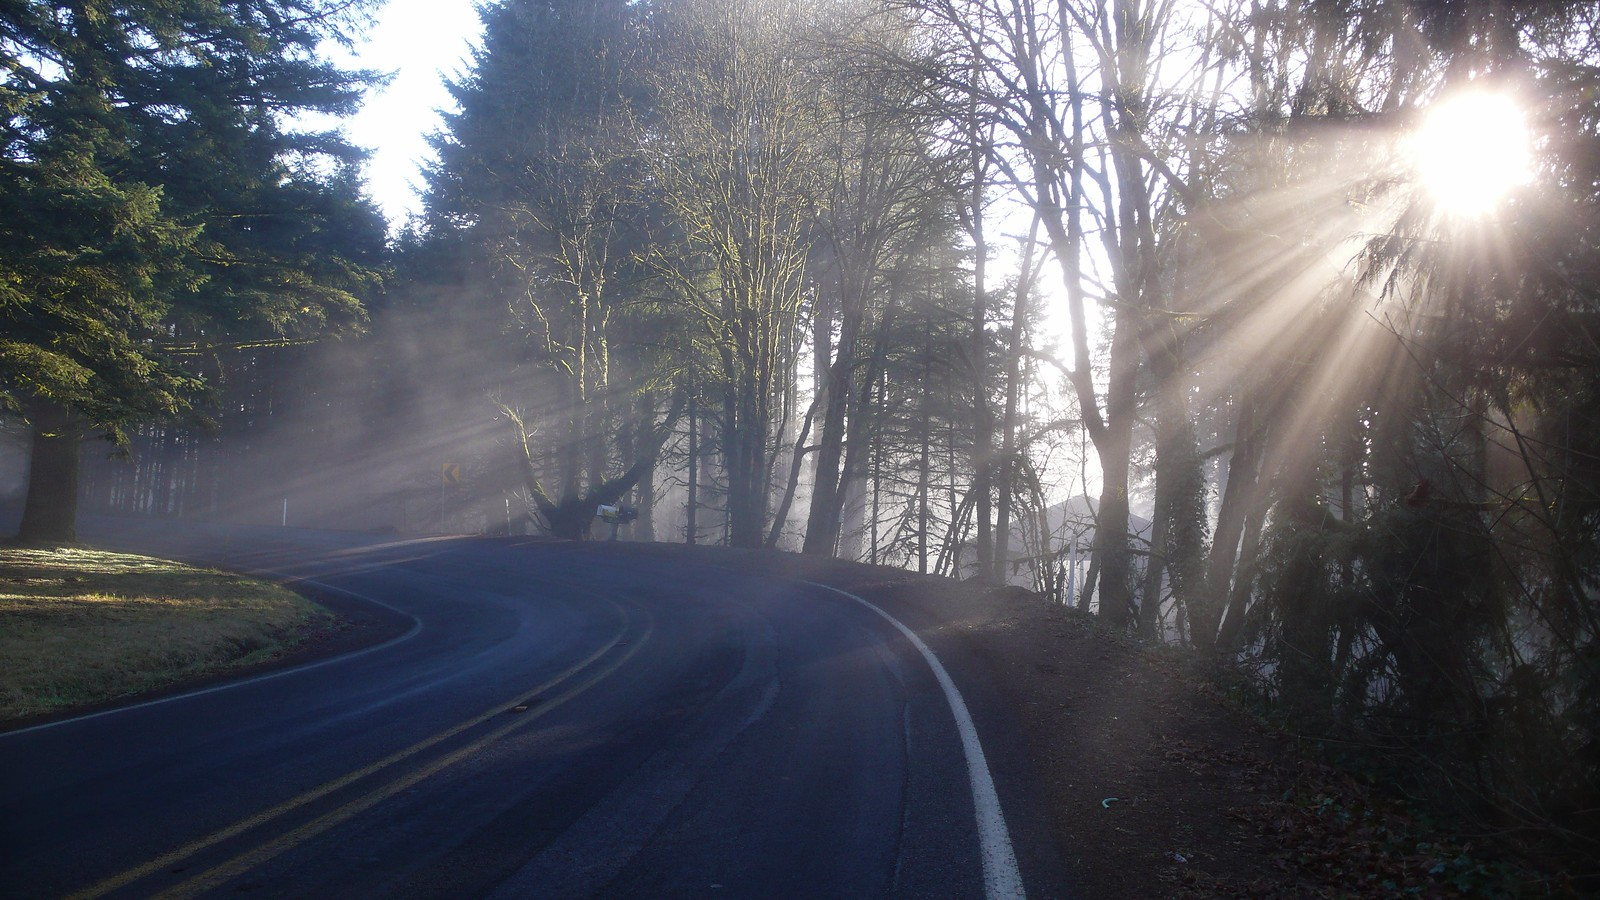 Cycling out of fog up Bald Peak in the Chehalem Mountains near Forest Grove and Newberg Oregon